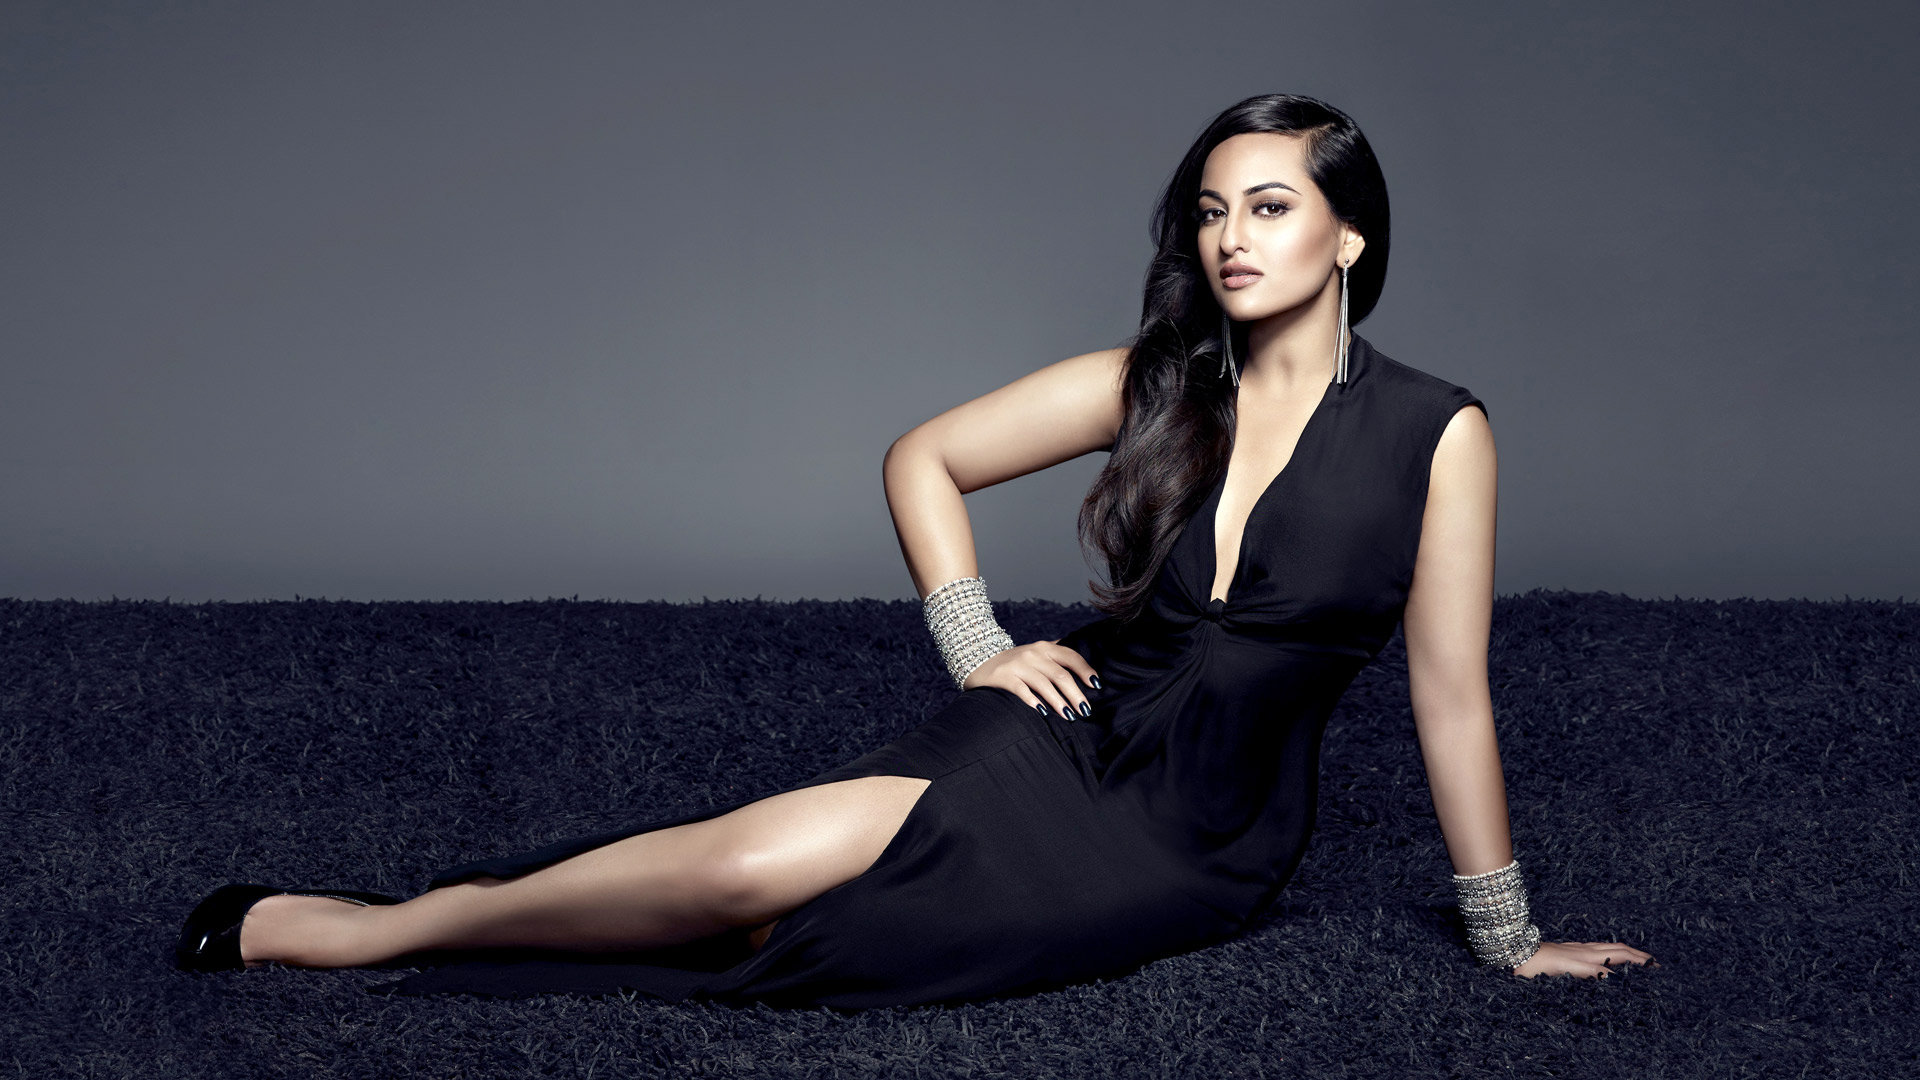 Awesome Sonakshi Sinha free wallpaper ID:375397 for 1080p computer